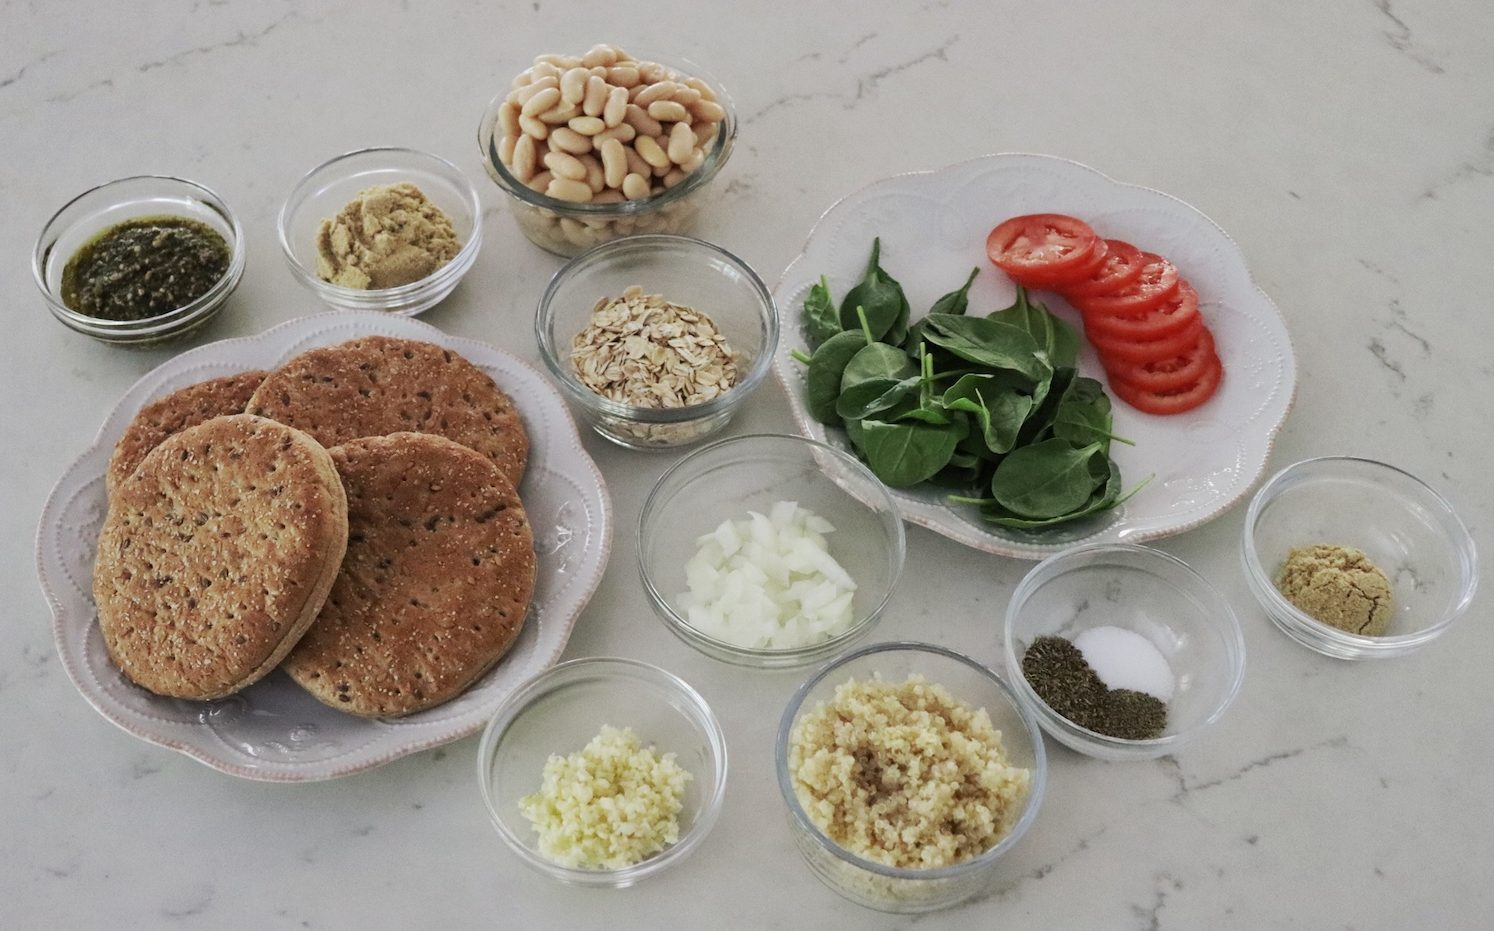 All ingredients for Flaxseed Quinoa and White Bean Burgers in small clear glass bowls